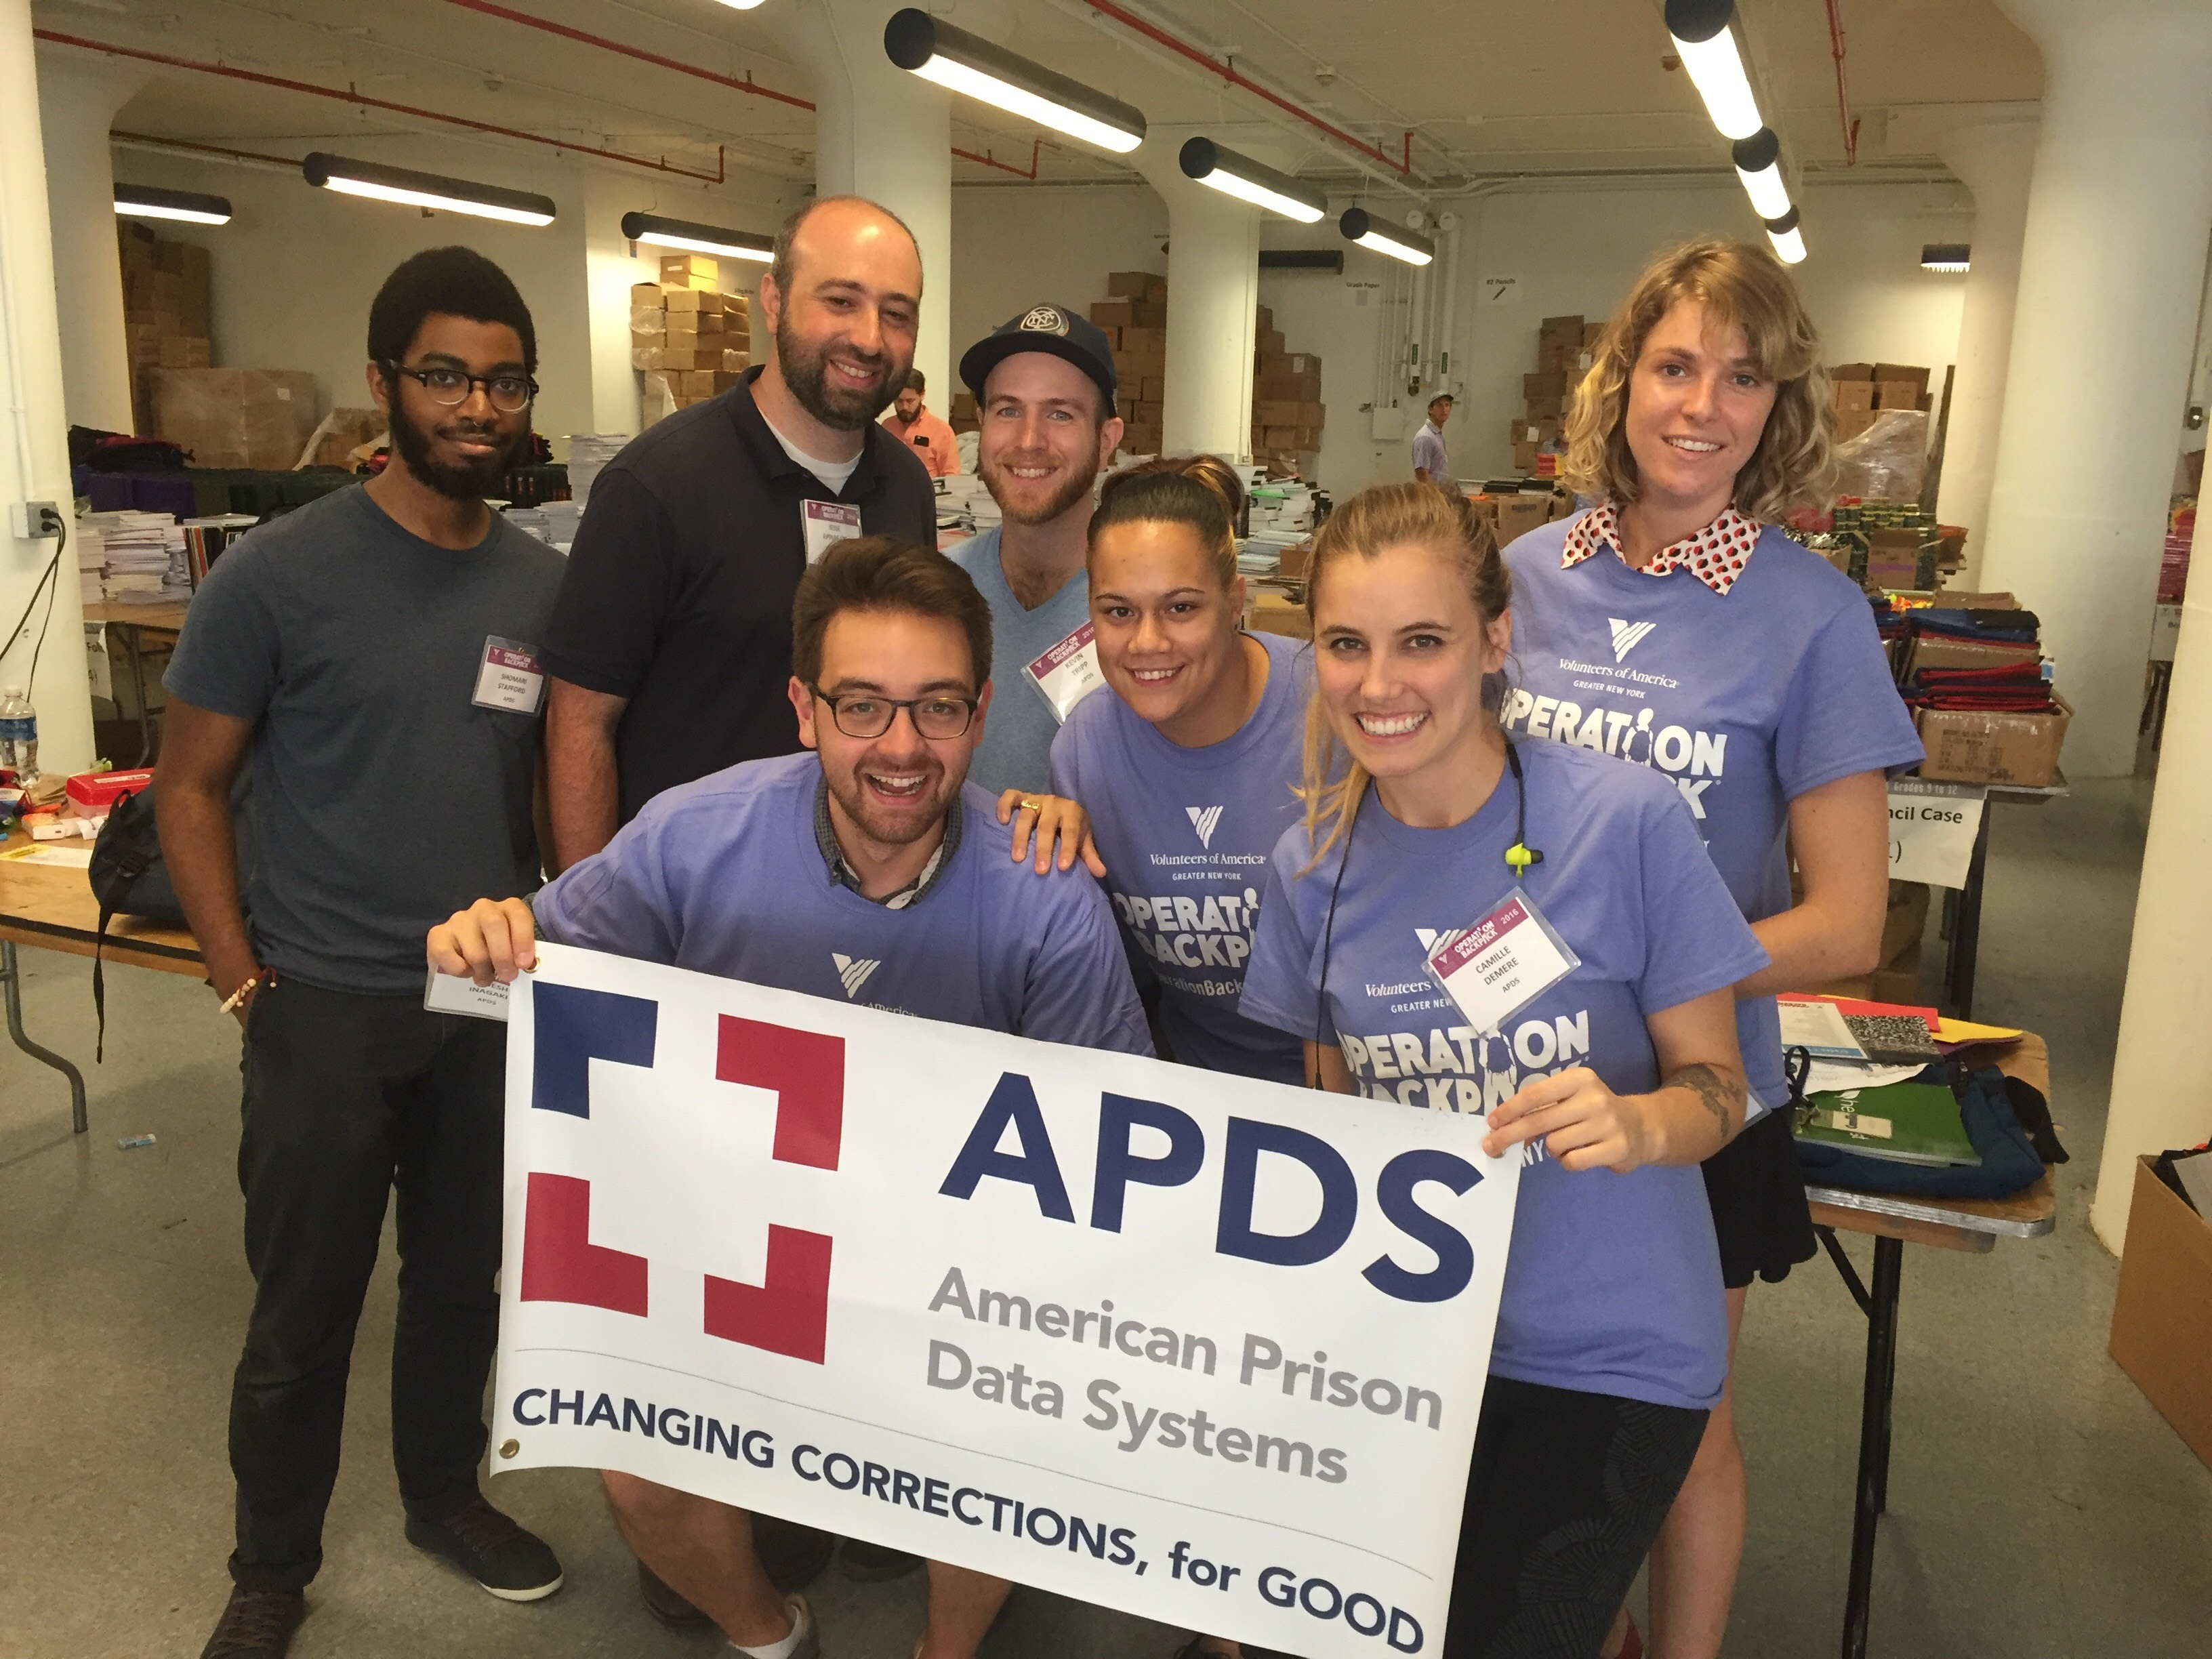 APDS is Changing Corrections for Good